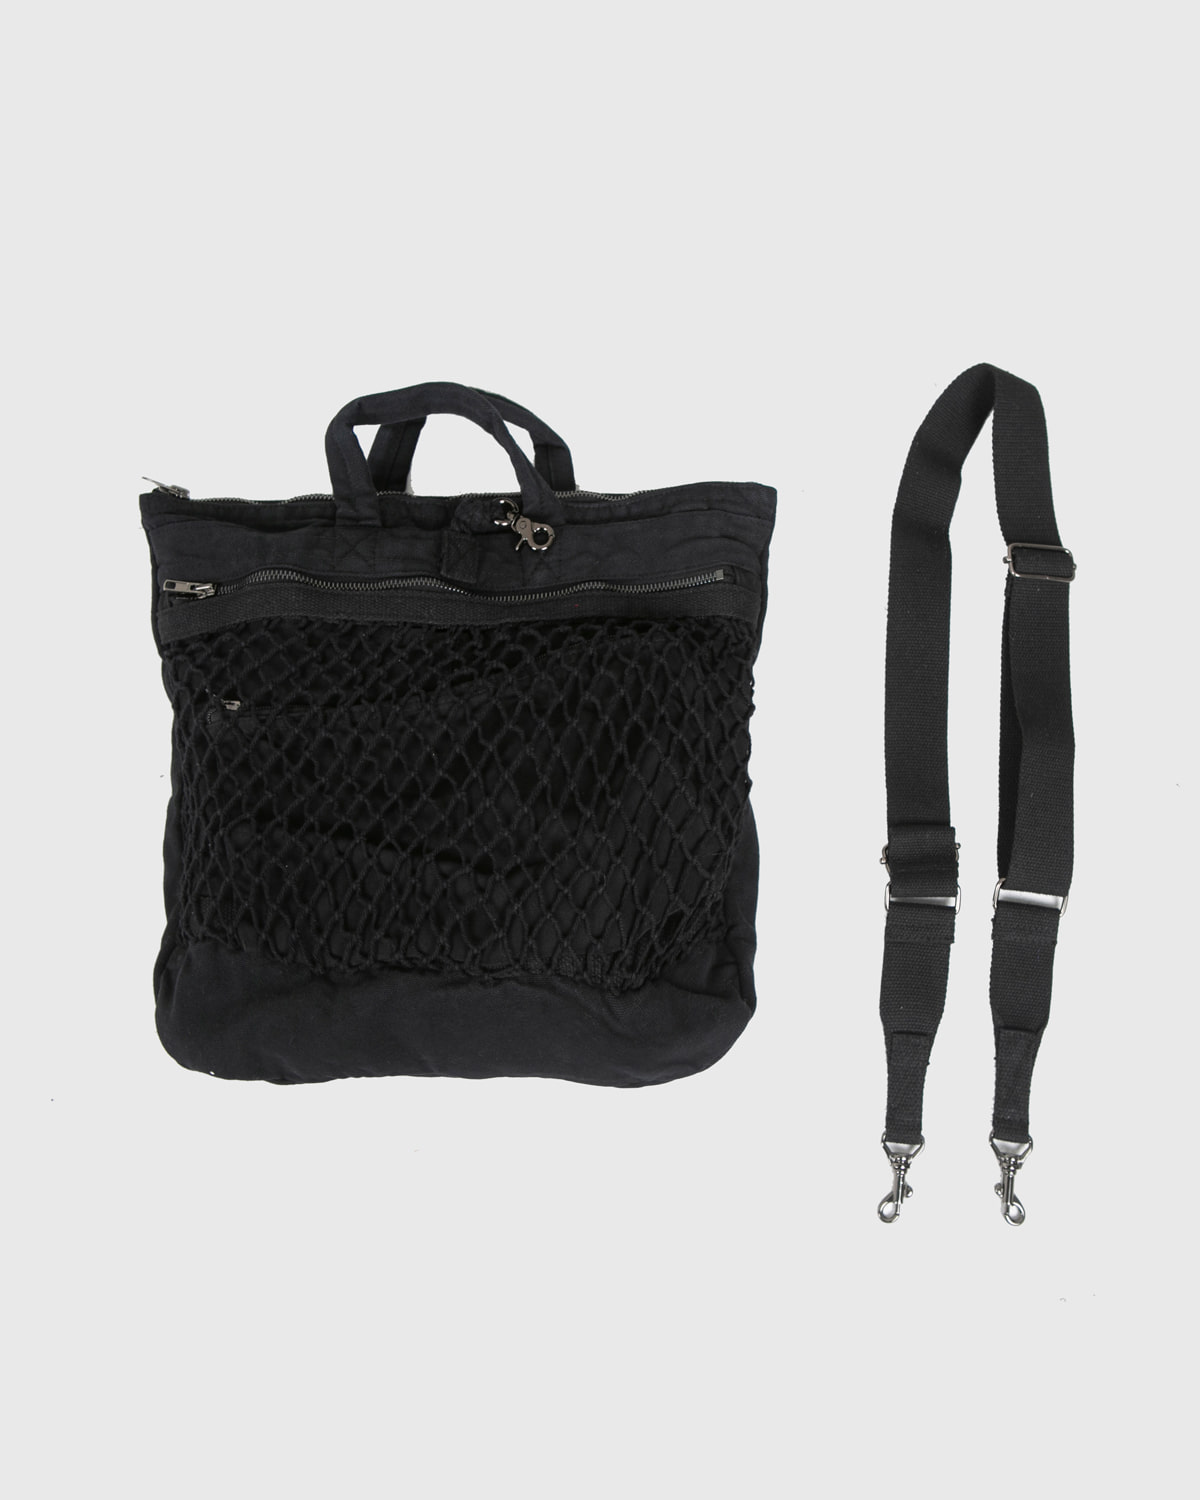 raucohouse-BASIC NET CROSS BAG - RAUCO HOUSE♡韓國男裝袋